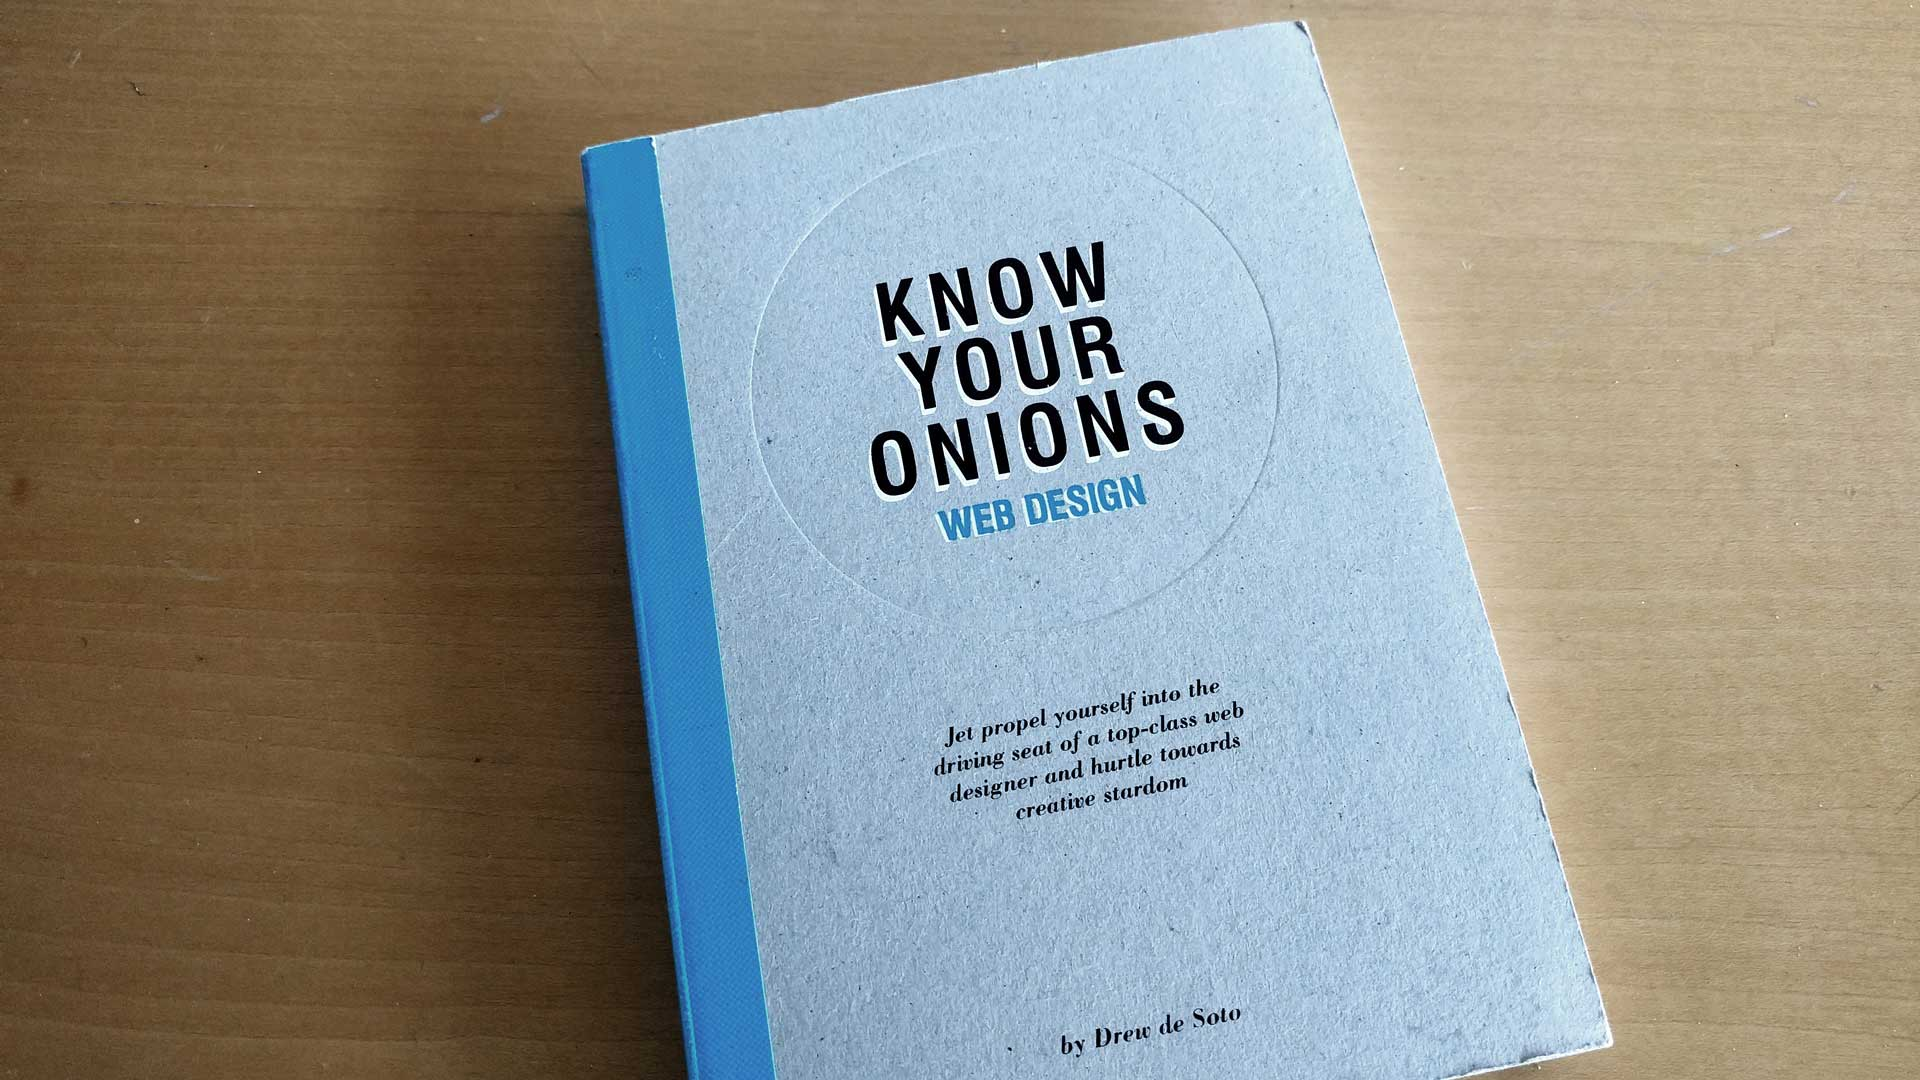 Bogen Know Your Onions